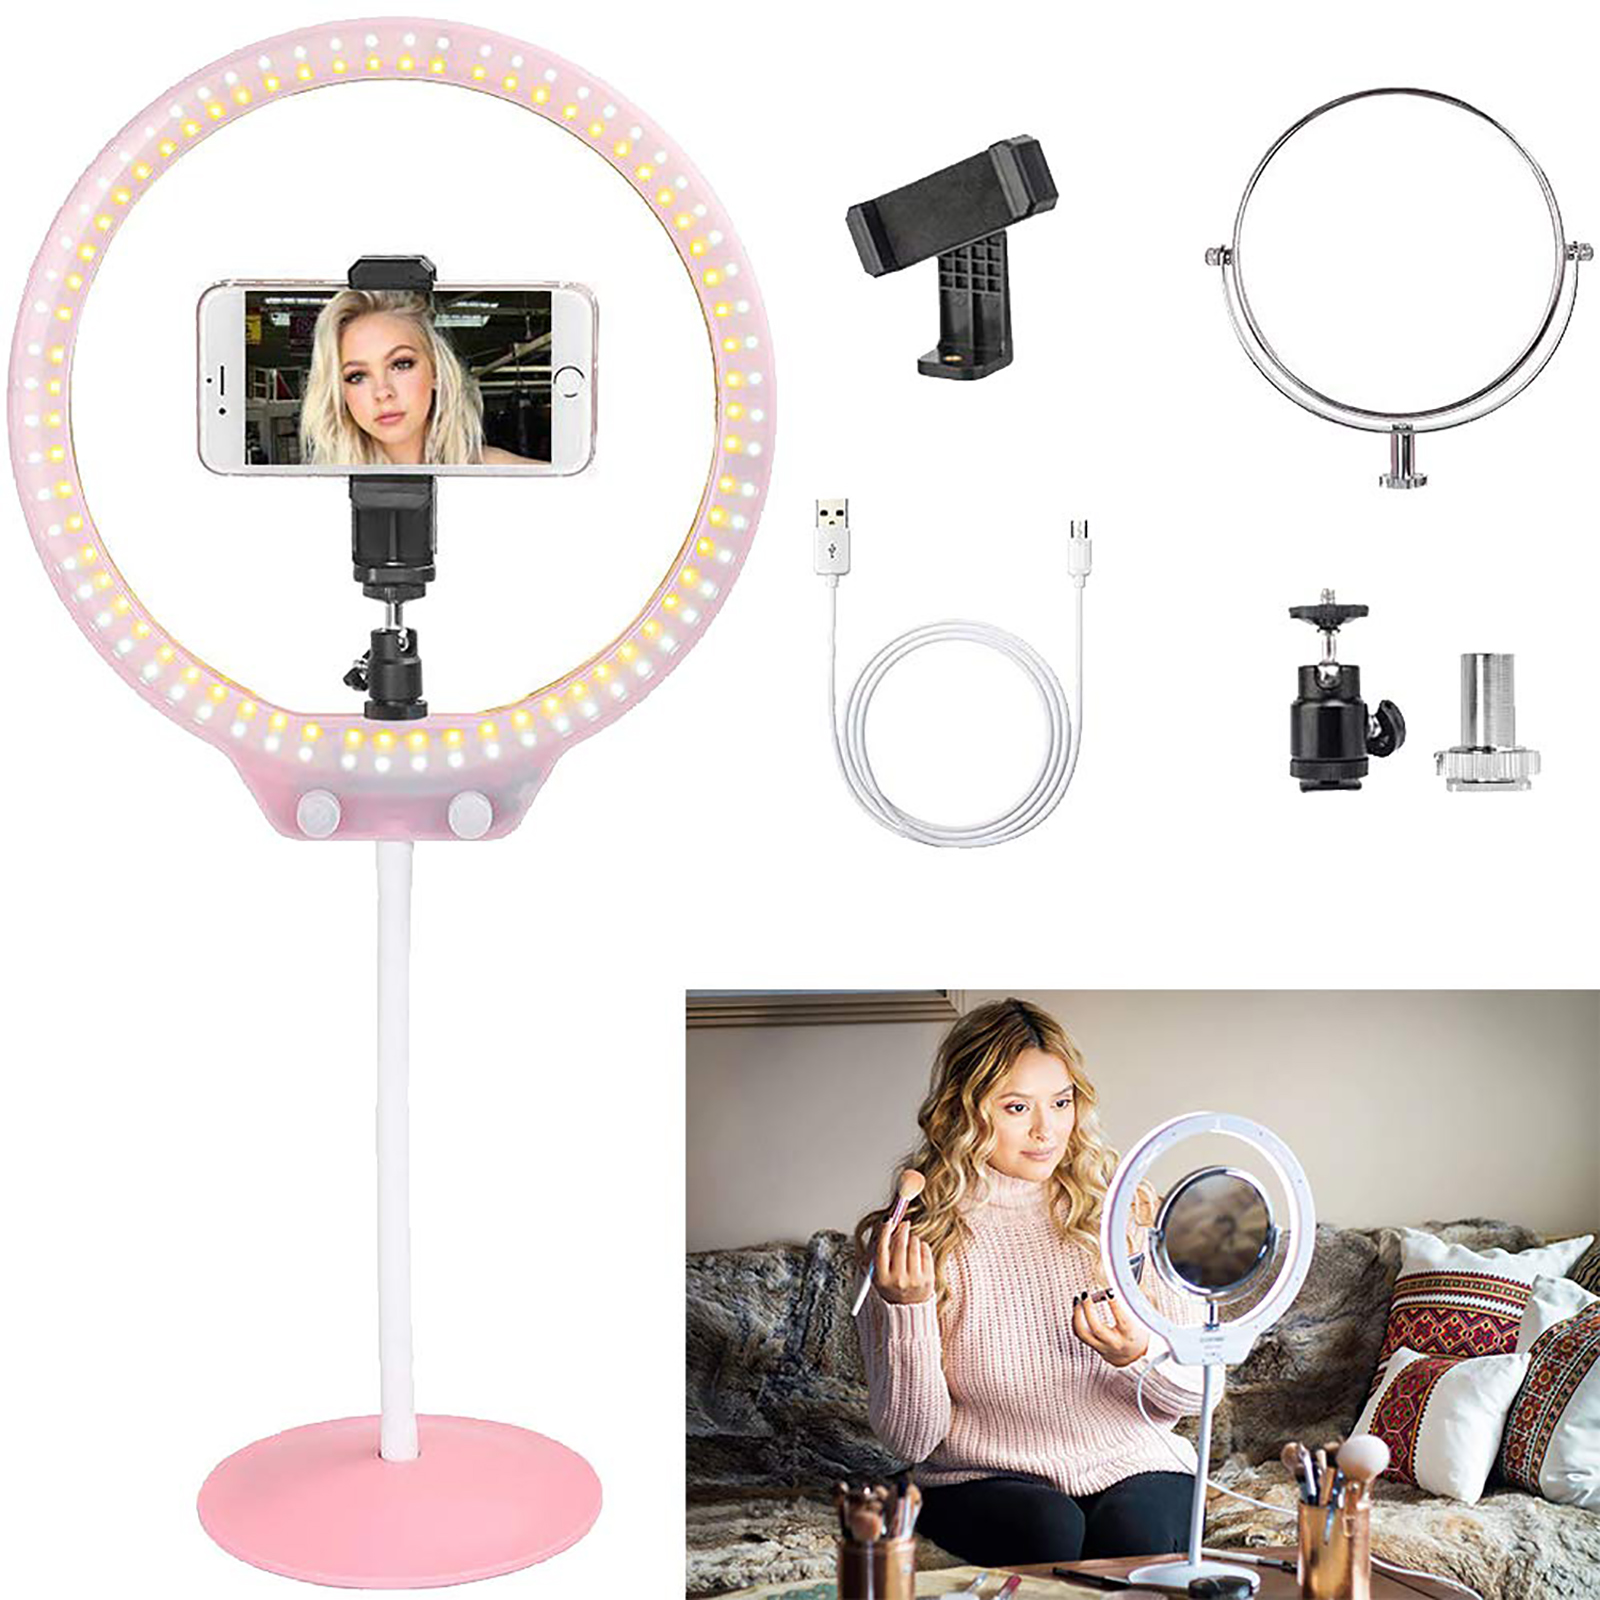 ZOMEI LED Selfie Ring Light Photographic Lighting Camera Photo Video Studio Flexible Table Ringlight with Stand For Makeup PhoneZOMEI LED Selfie Ring Light Photographic Lighting Camera Photo Video Studio Flexible Table Ringlight with Stand For Makeup Phone